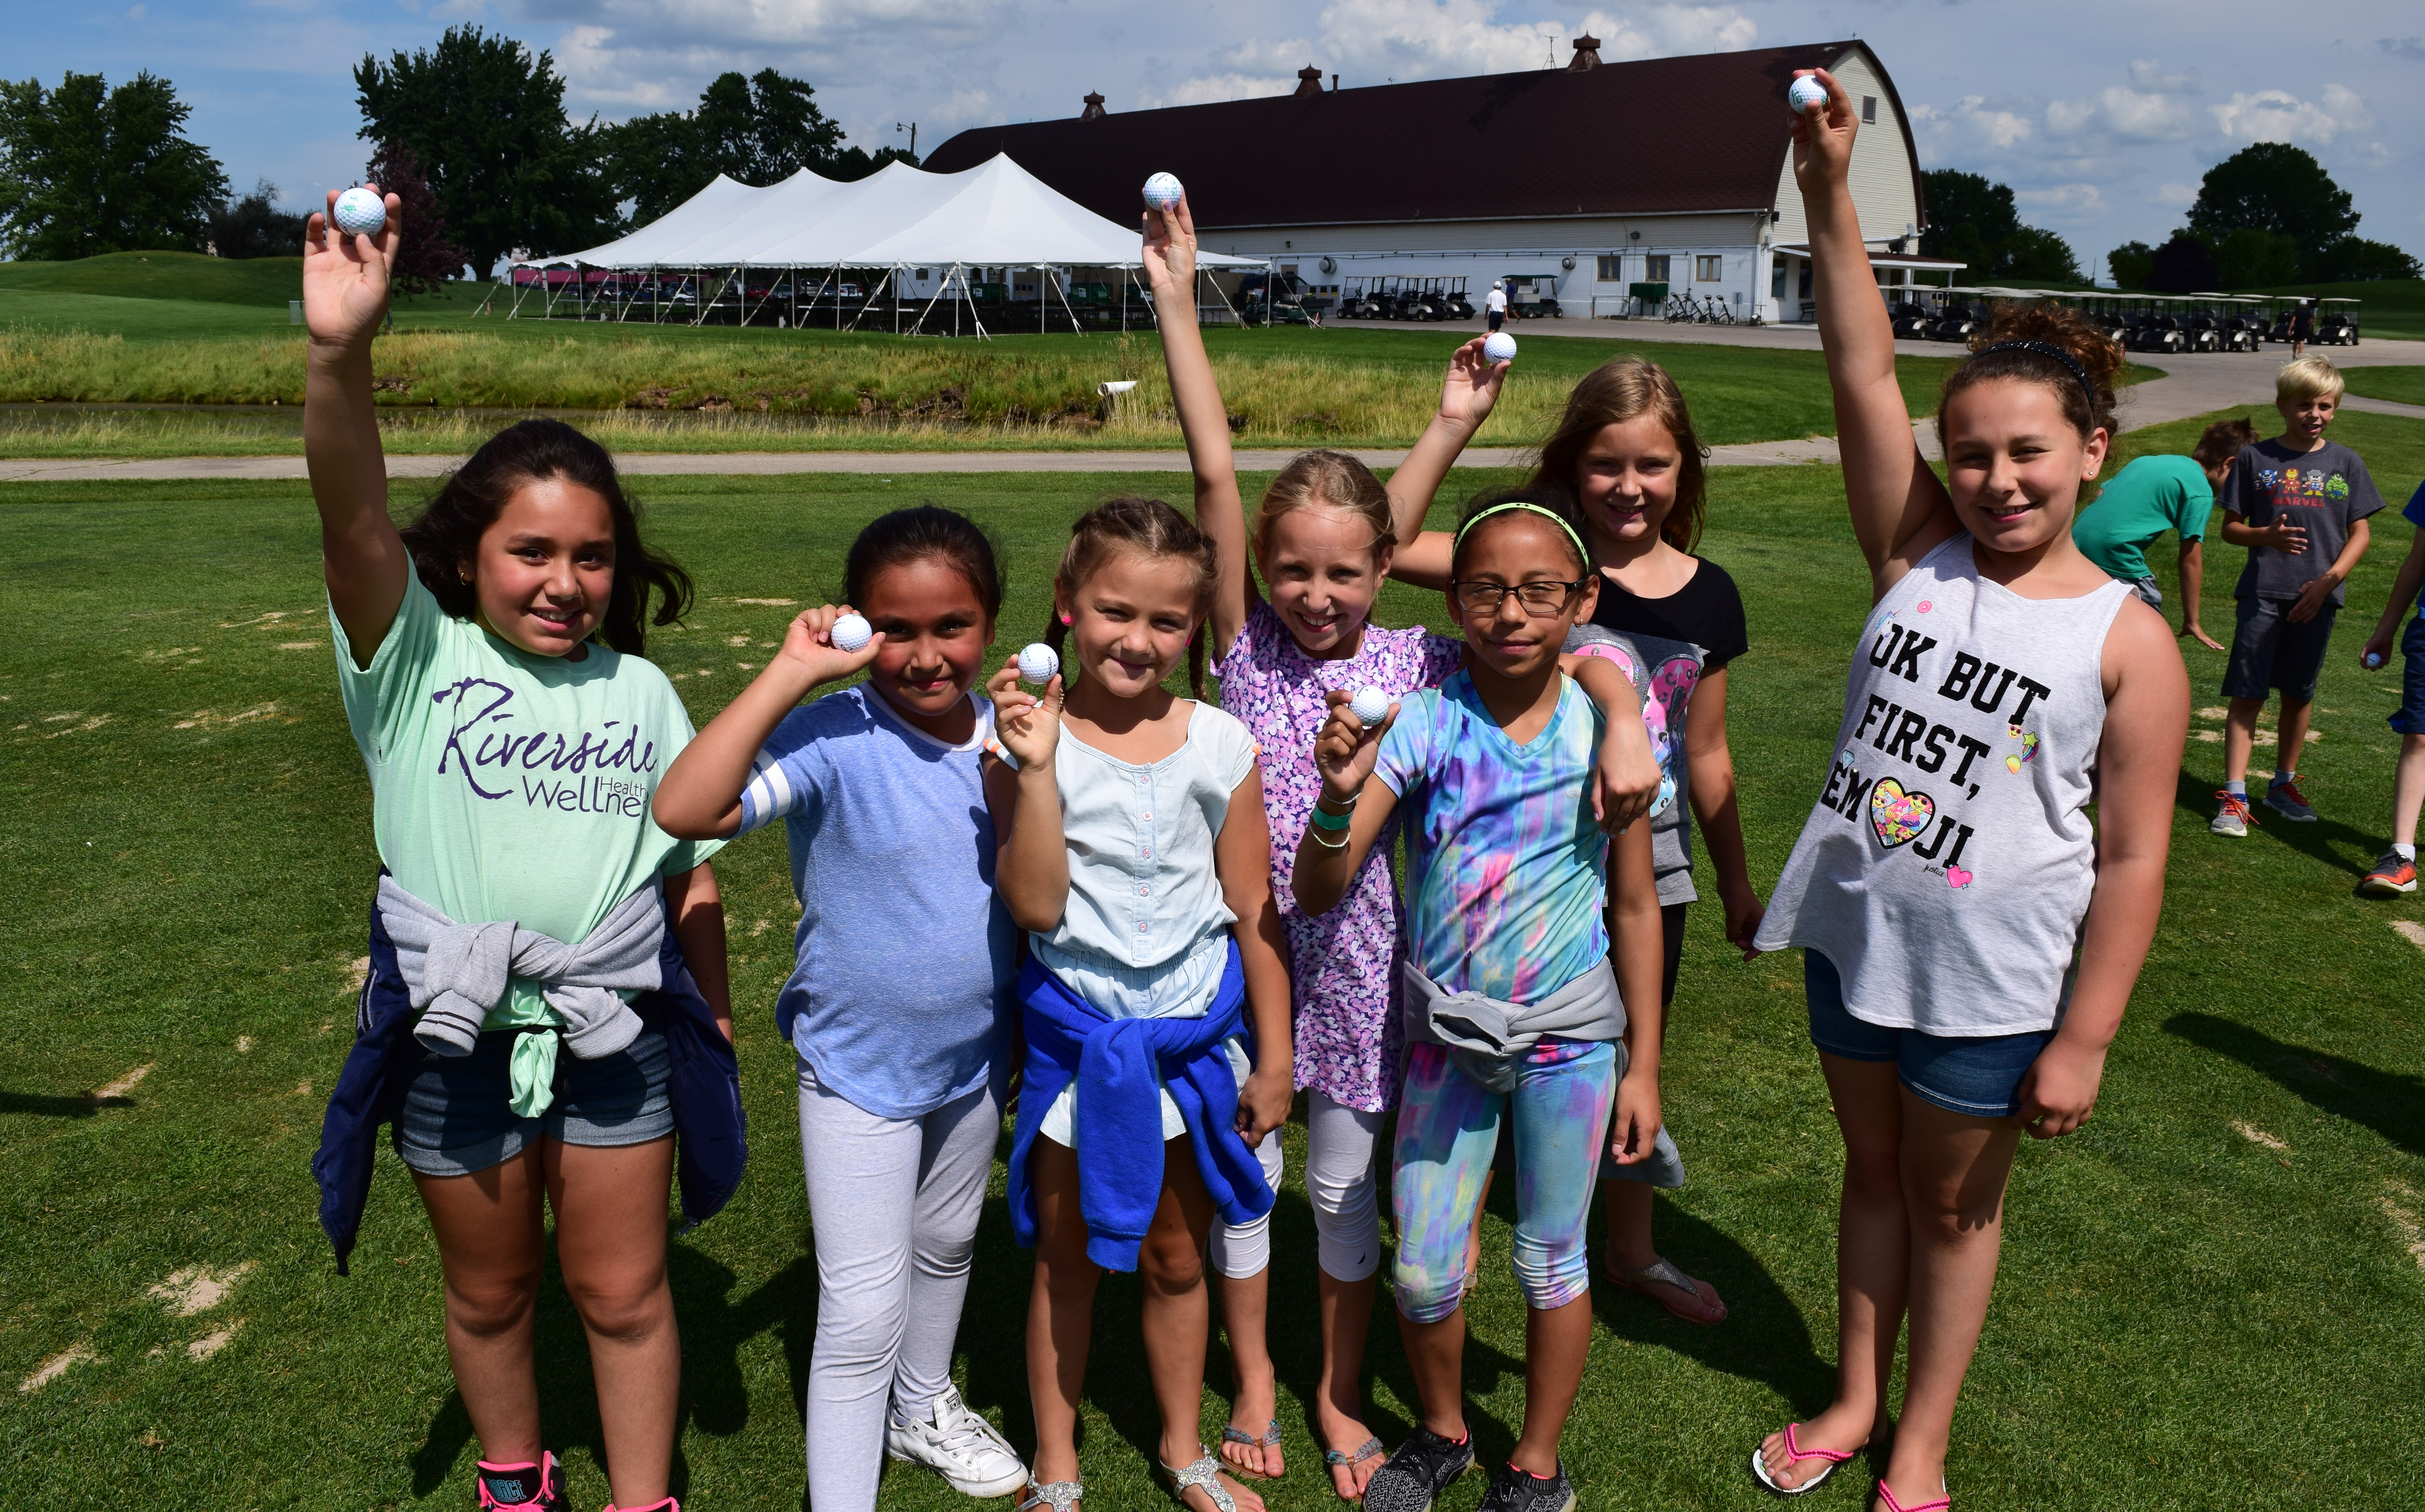 The First Tee Summer Programming